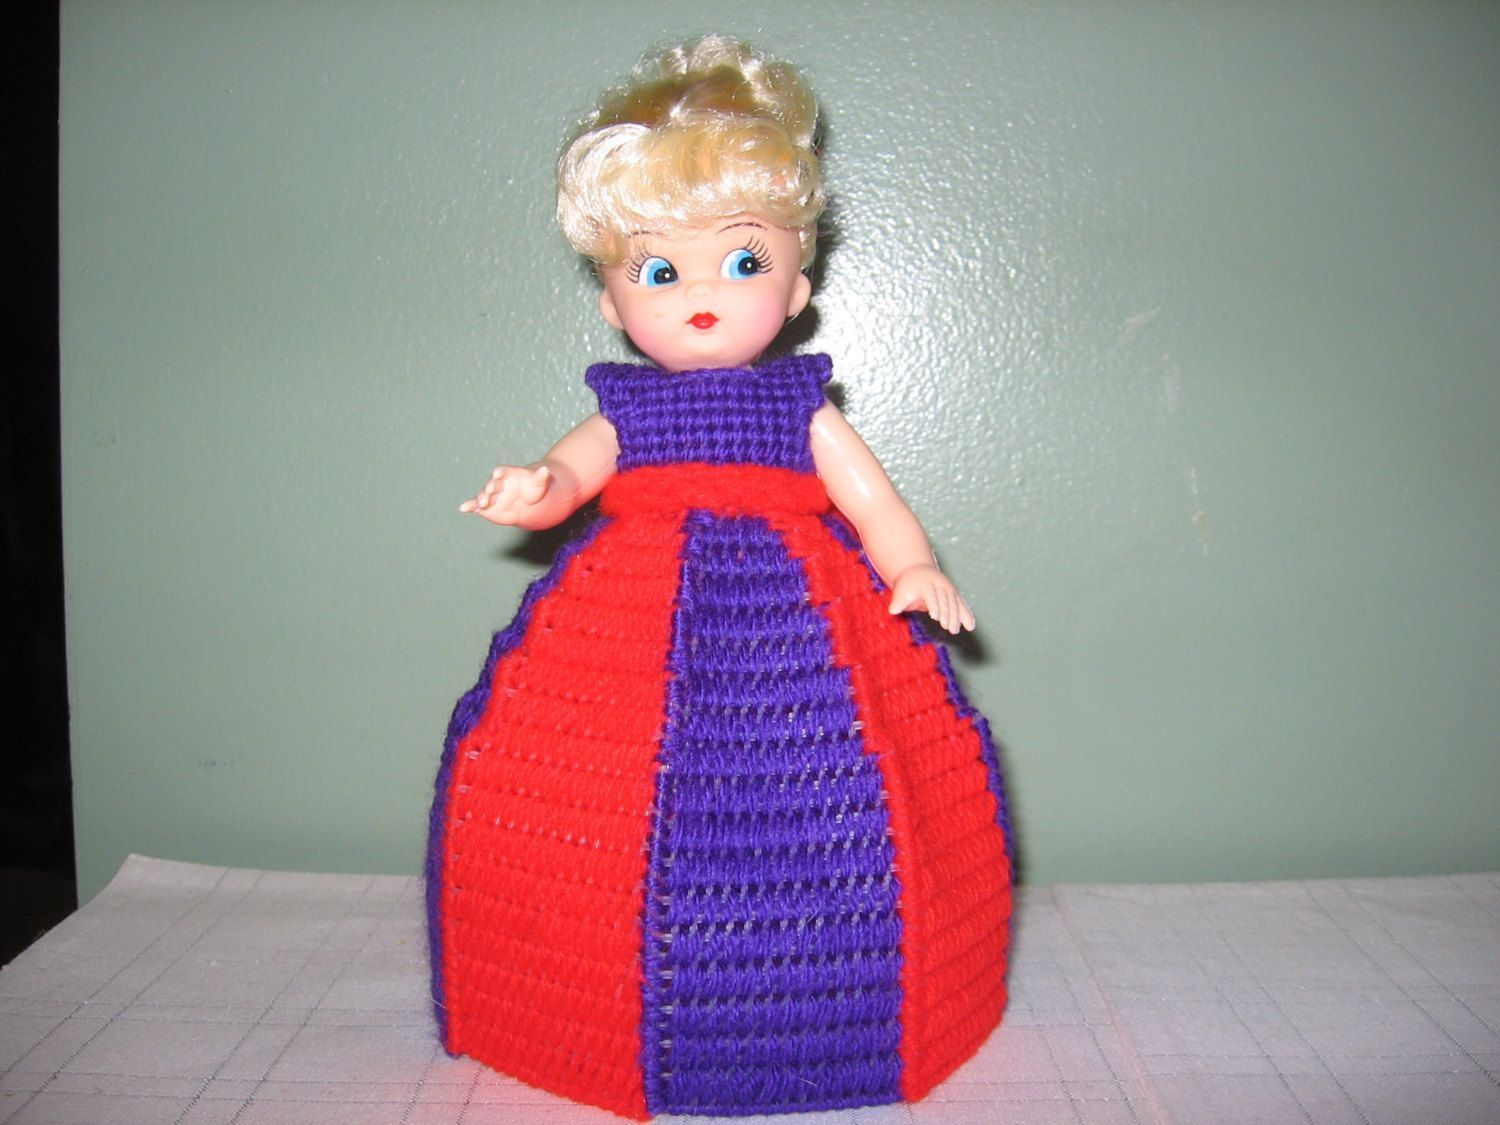 Red Hat Society Collectible Doll - use for decoration or Air Freshner!! by CreationsbyAMJ on Etsy #airfreshnerdolls Red Hat Society Collectible Doll - use for decoration or Air Freshner!! by CreationsbyAMJ on Etsy #airfreshnerdolls Red Hat Society Collectible Doll - use for decoration or Air Freshner!! by CreationsbyAMJ on Etsy #airfreshnerdolls Red Hat Society Collectible Doll - use for decoration or Air Freshner!! by CreationsbyAMJ on Etsy #airfreshnerdolls